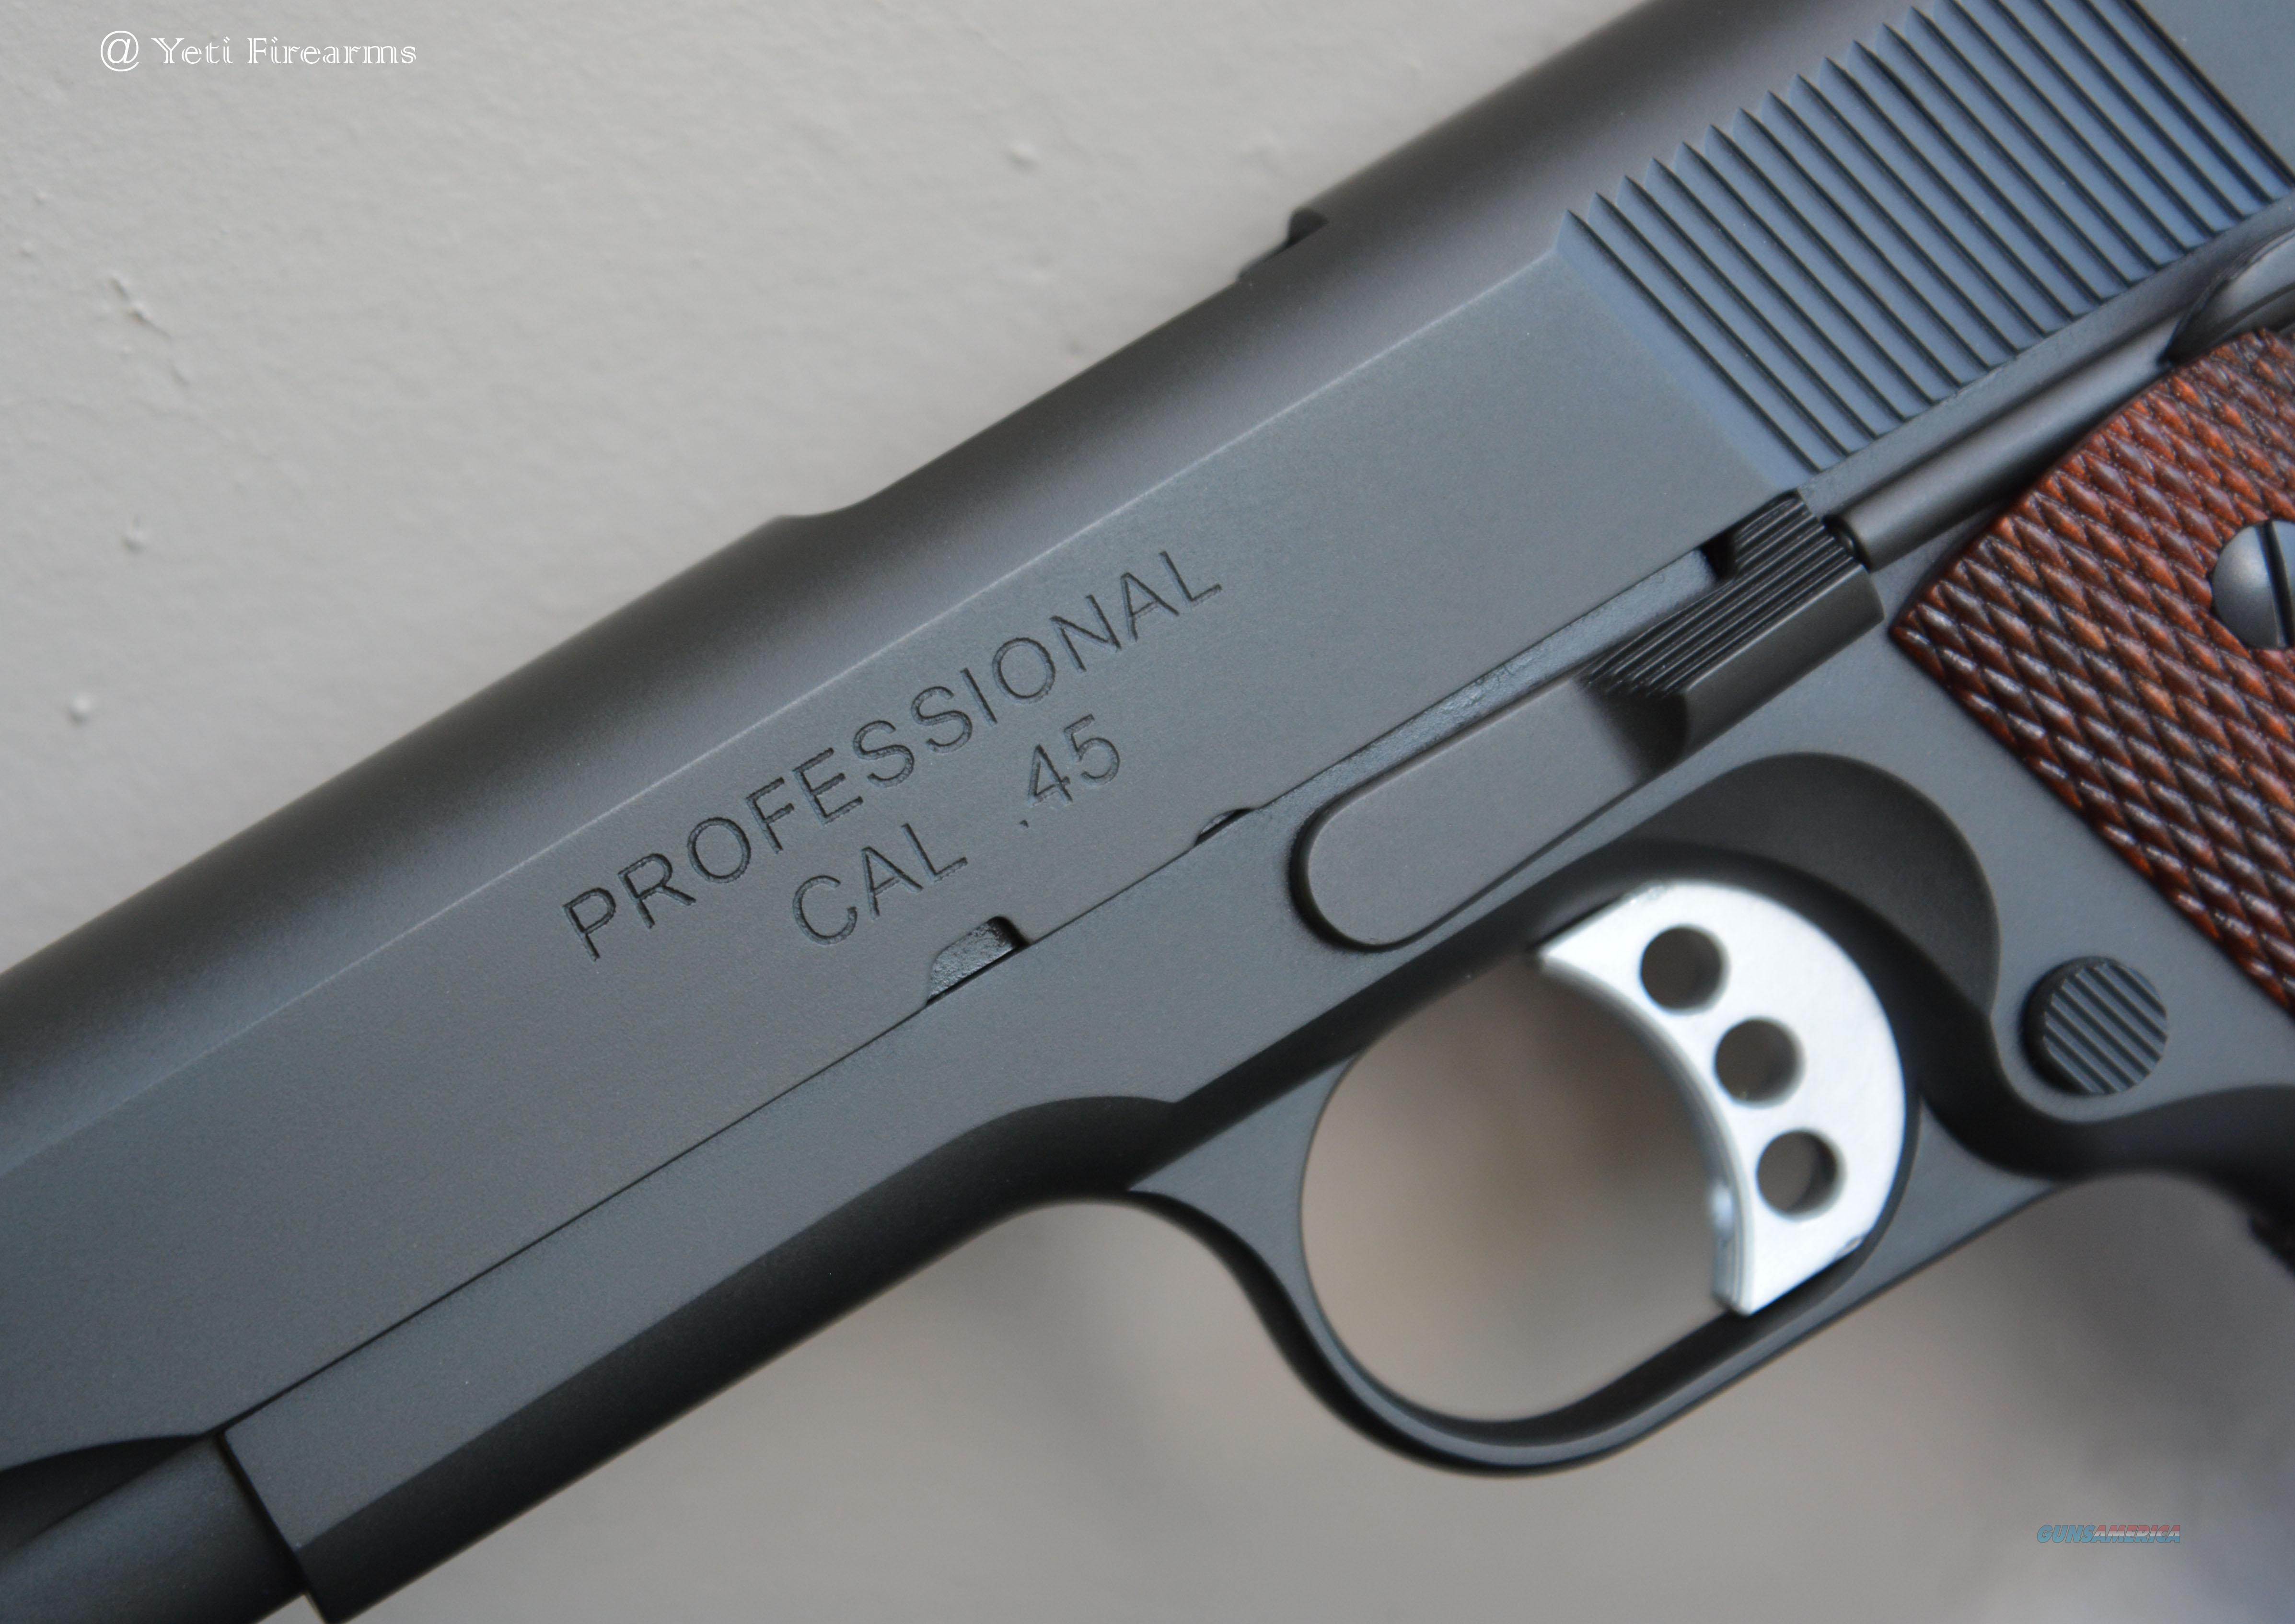 Springfield Professional 1911 45 Pc9111 No Cc For Sale